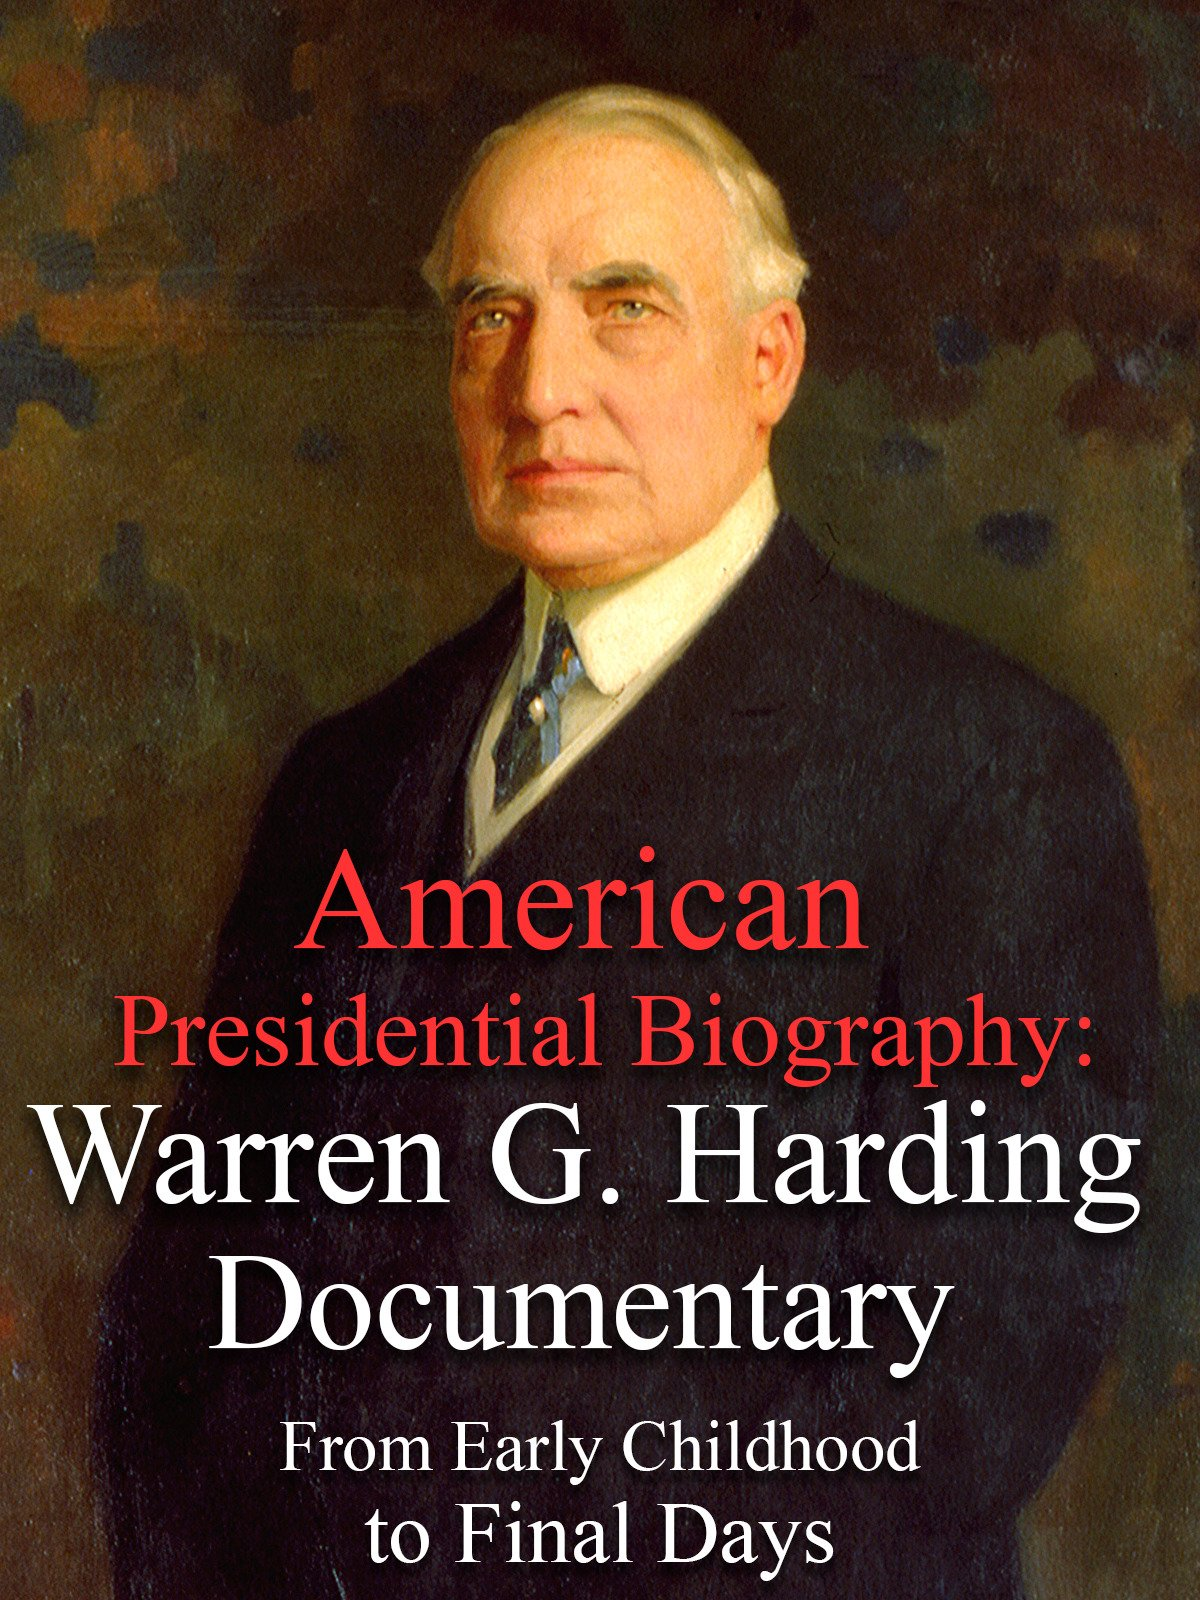 American Presidential Biography Warren G. Harding Documentary From Early Childhood to Final Days